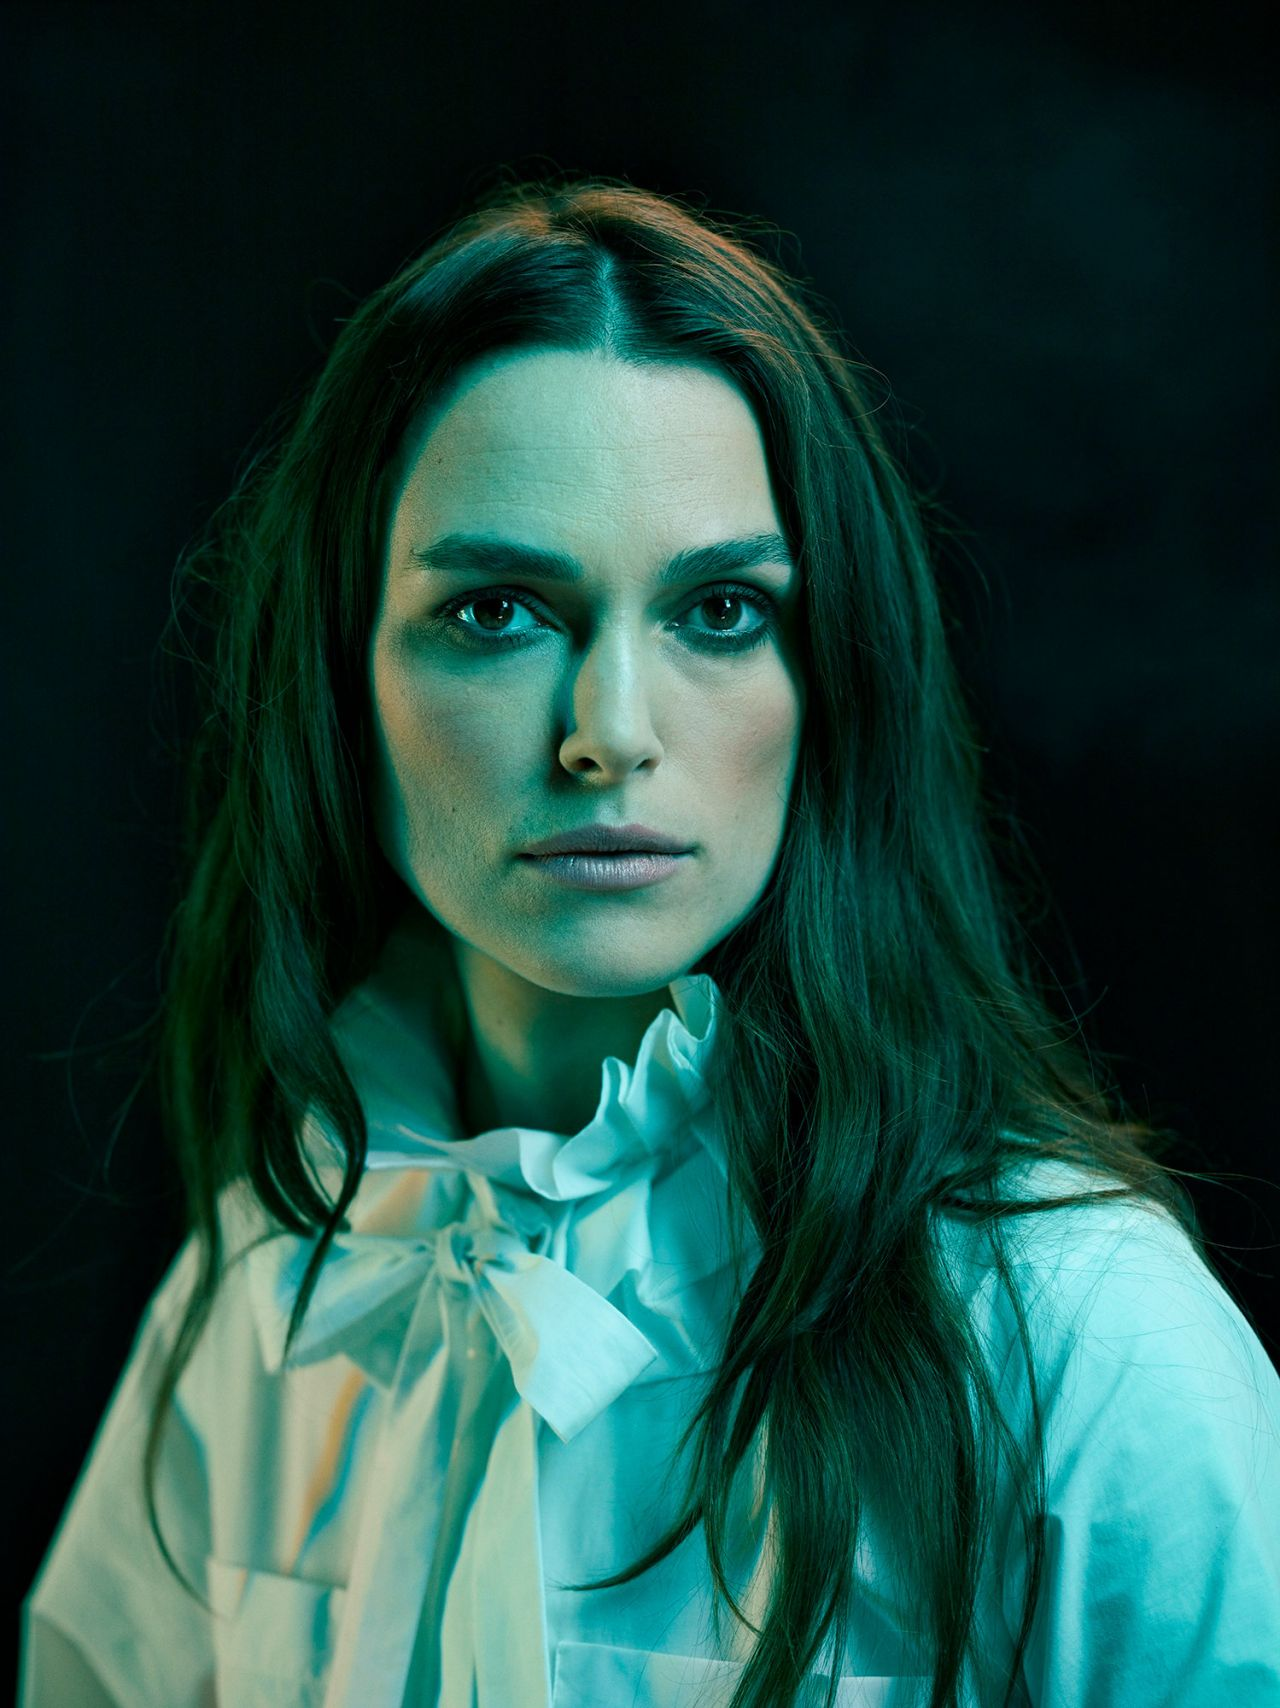 keira-knightley-photoshoot-for-variety-2018-3